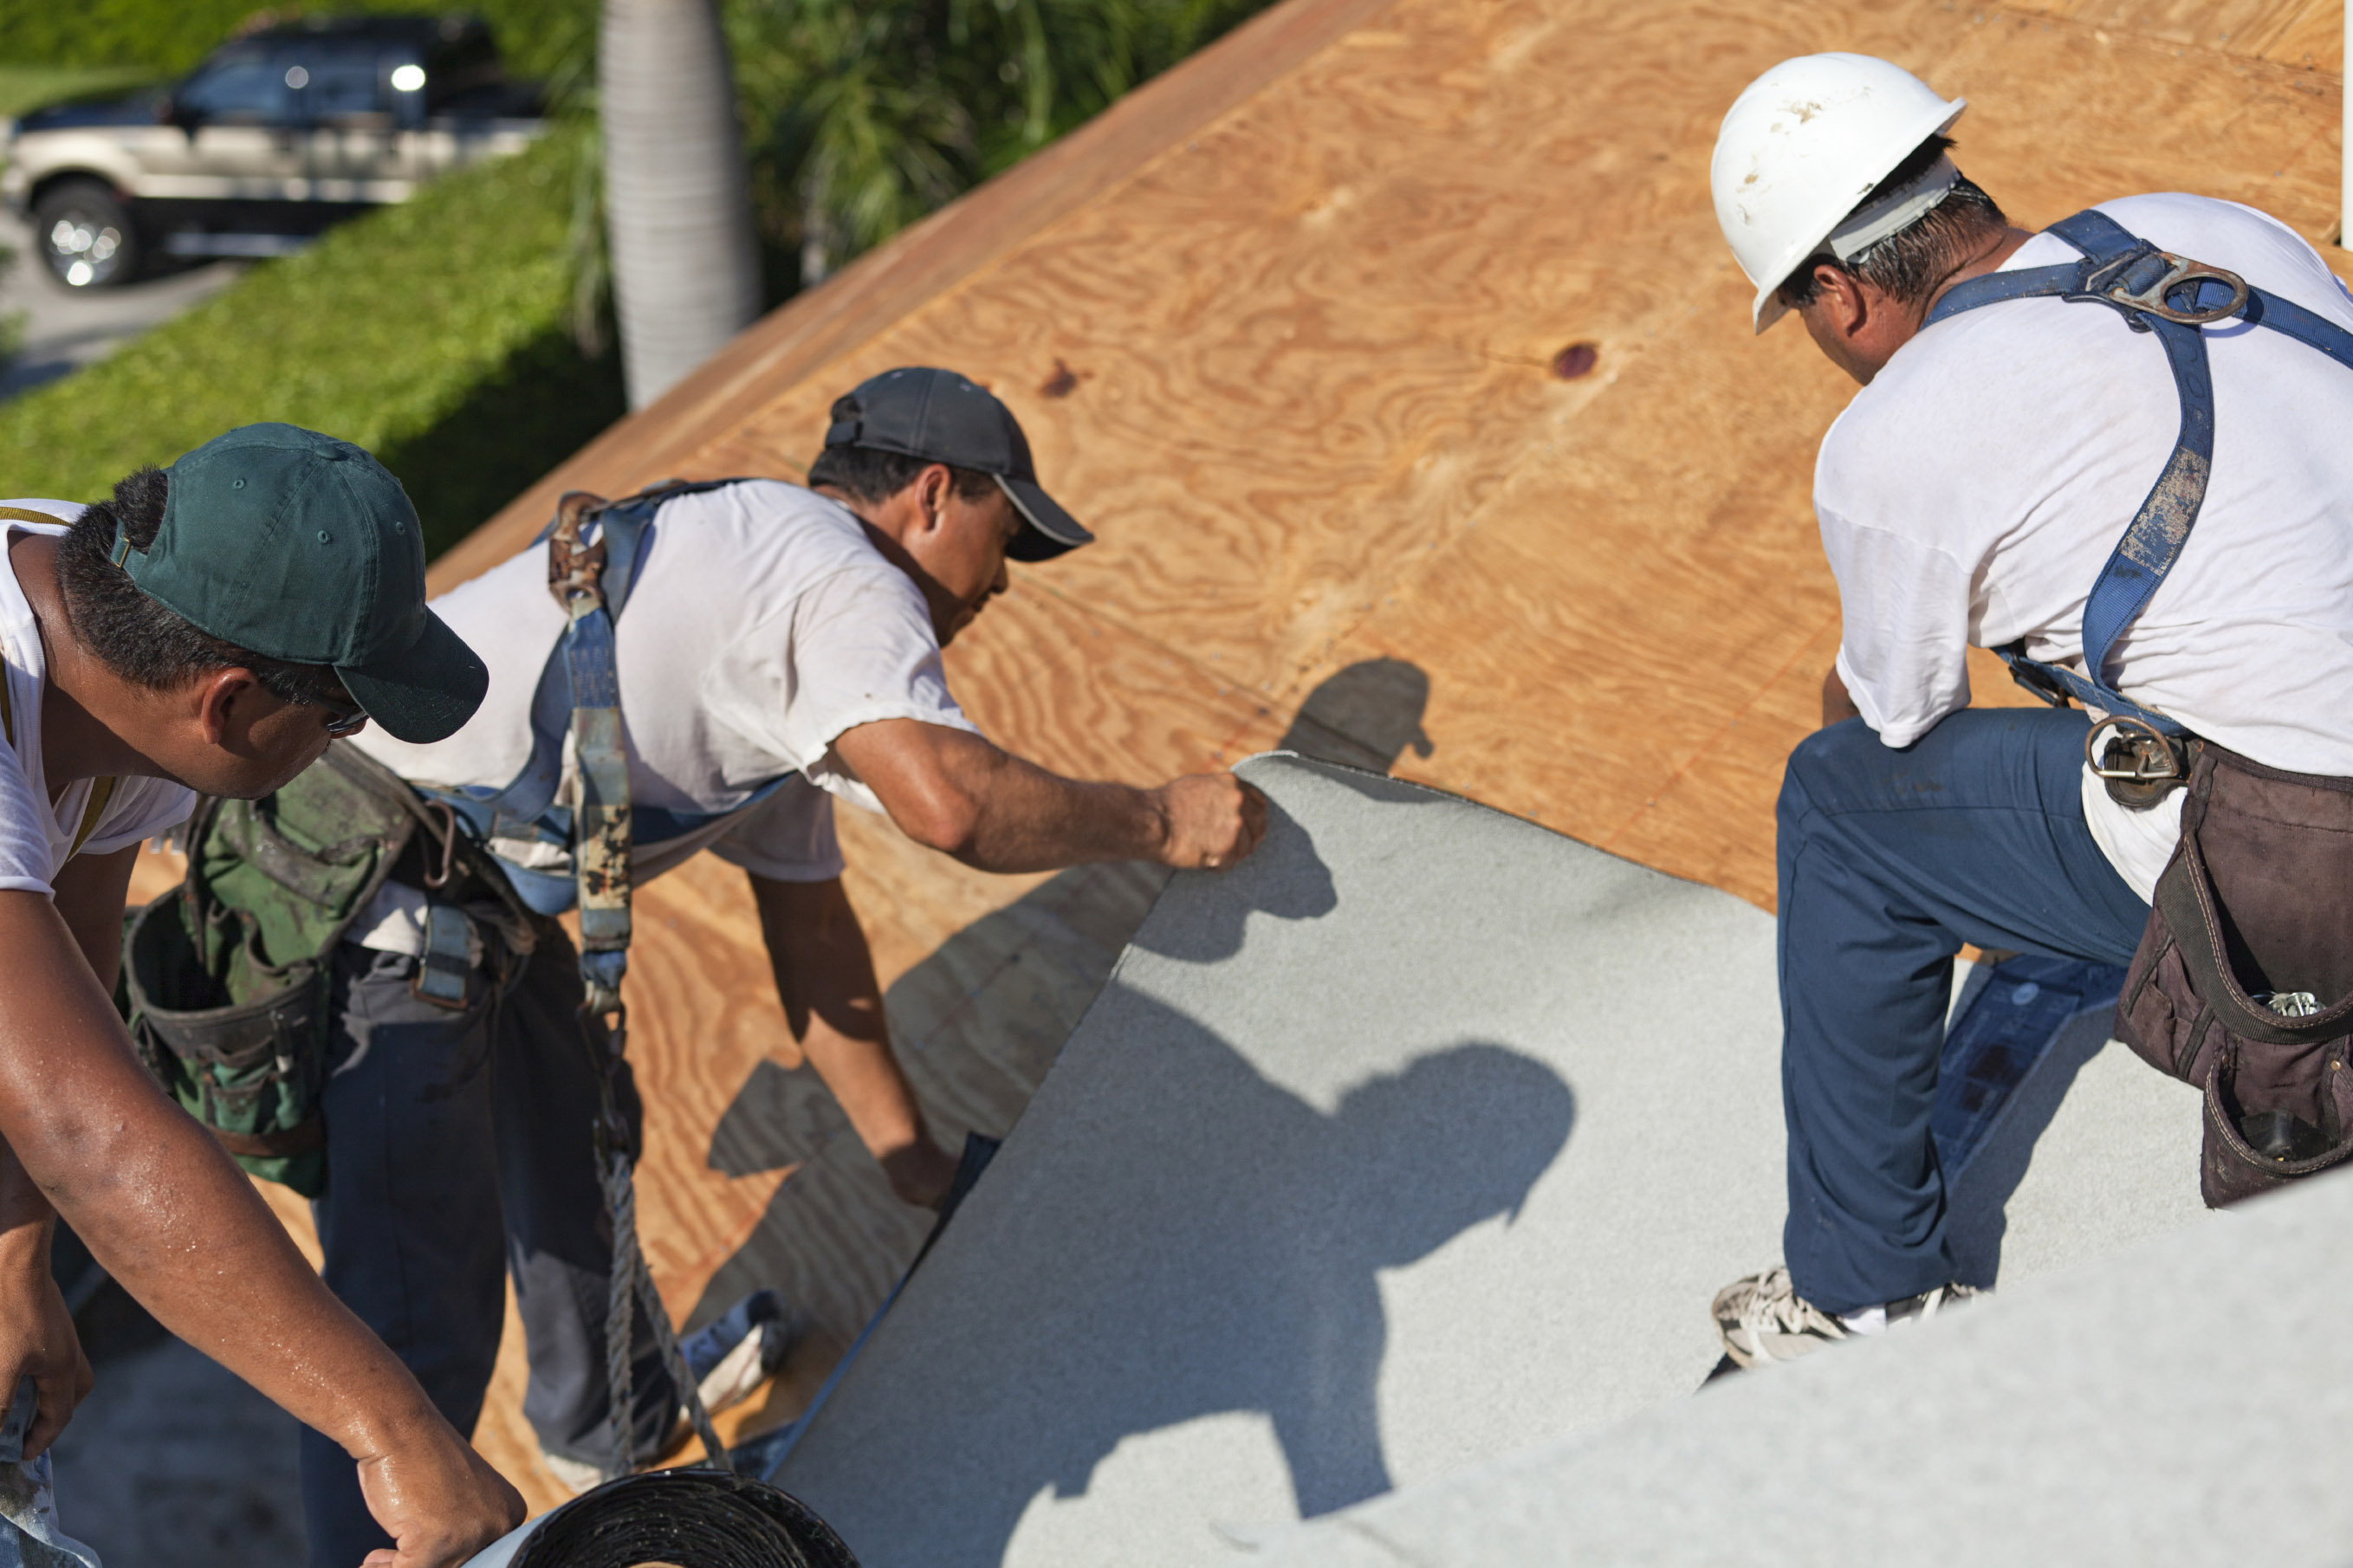 Reviewing OSHA Roof Safety Rules